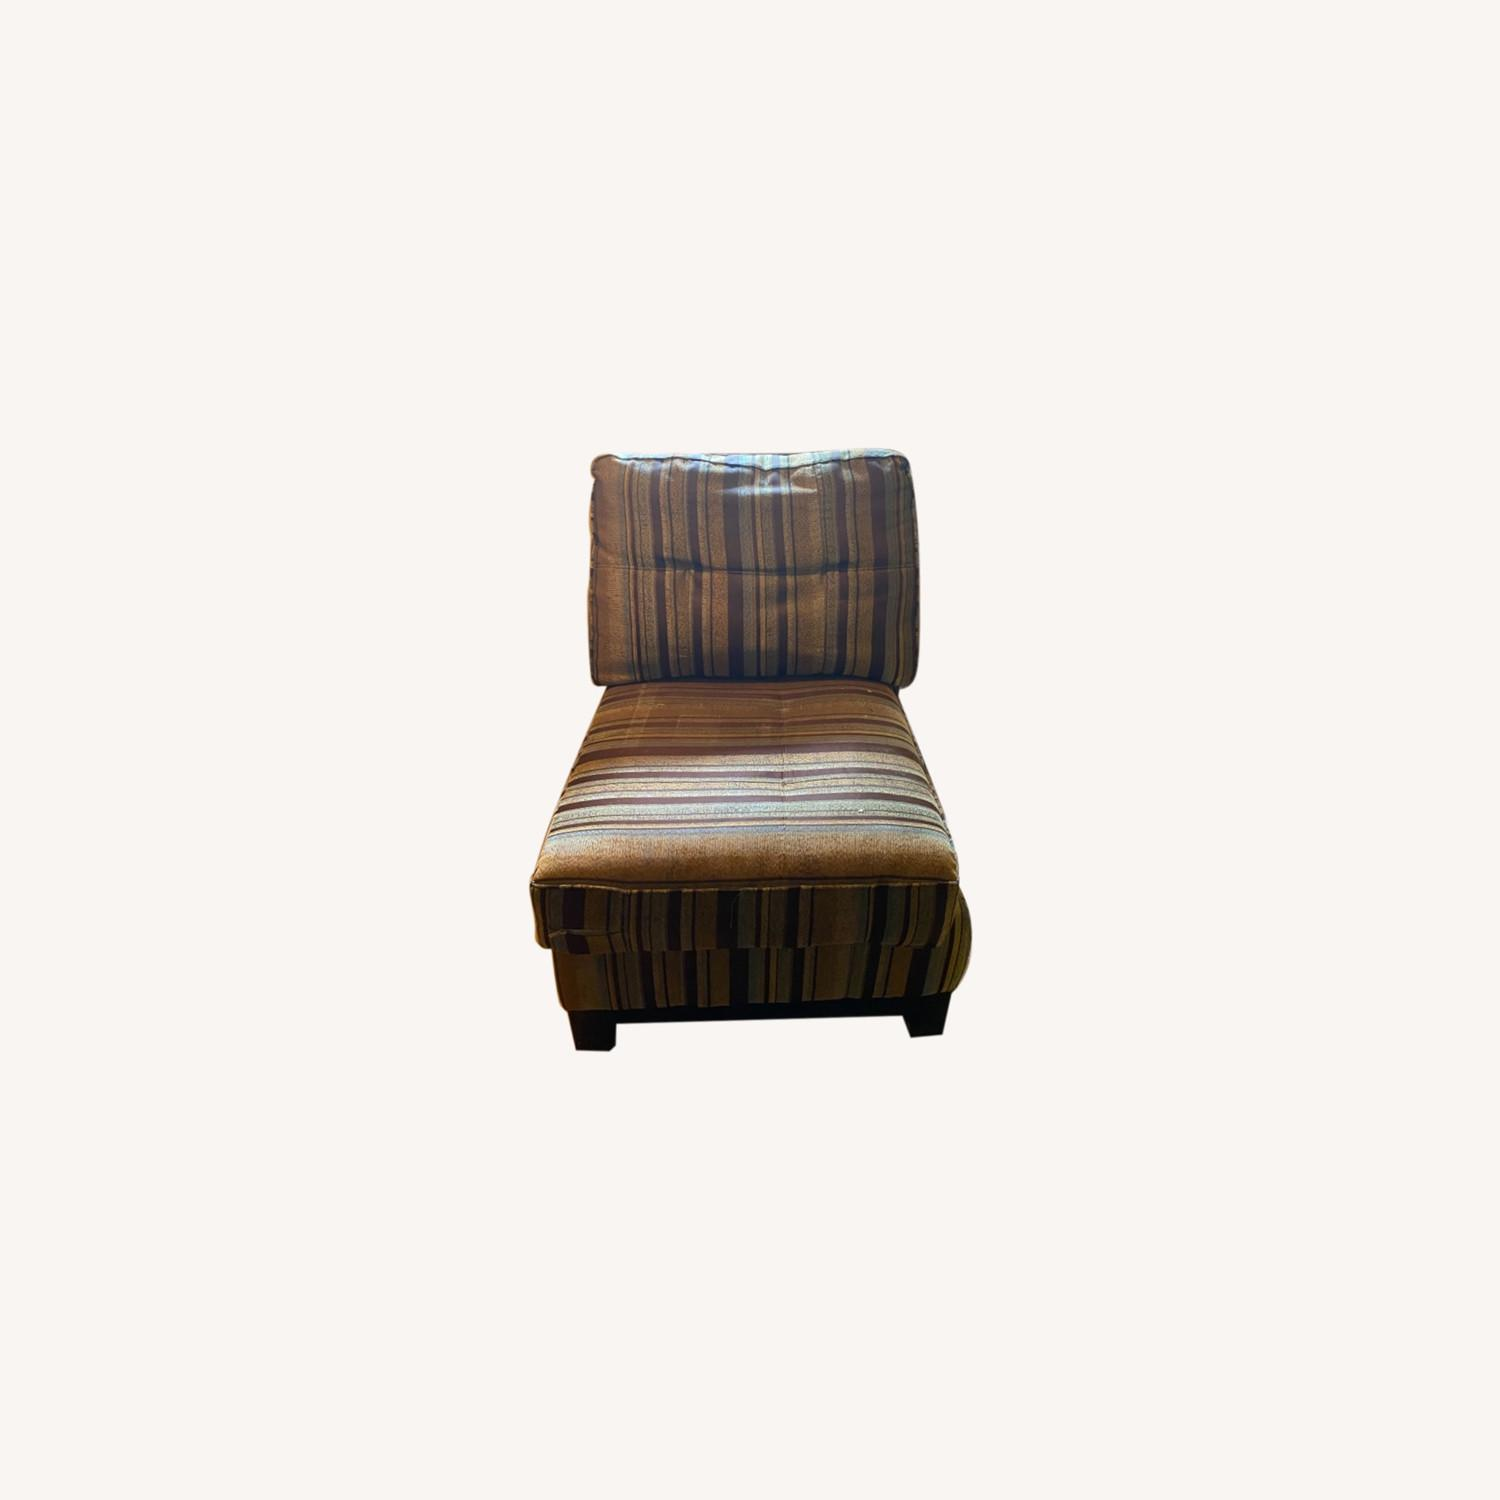 Ashley Furniture Accent Chair - image-0